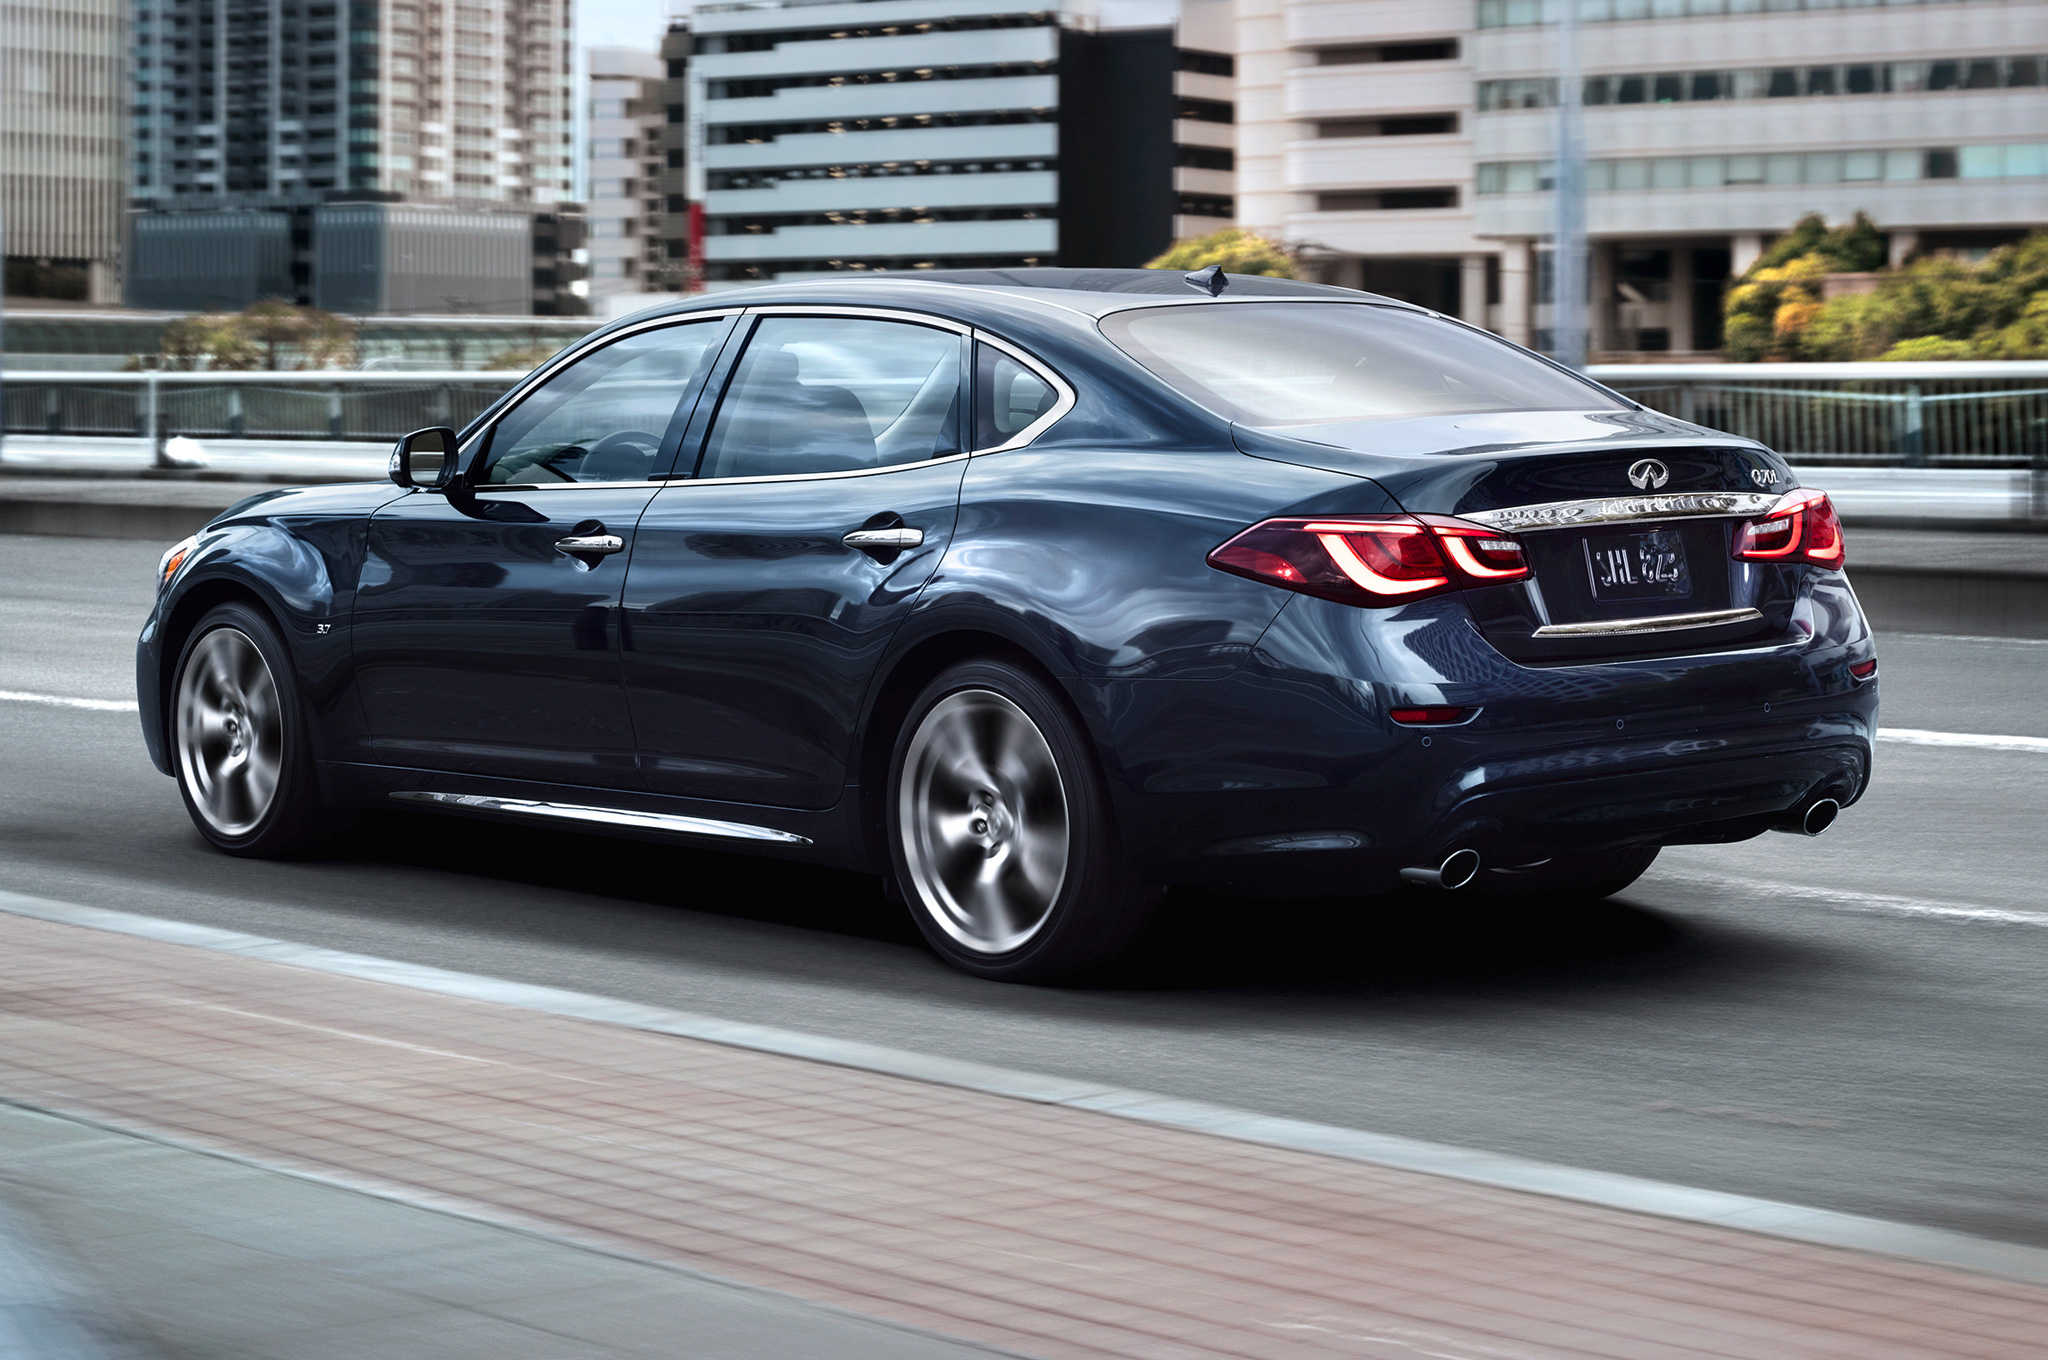 2015 Infiniti Q70l Rear Side Exterior (Photo 8 of 10)